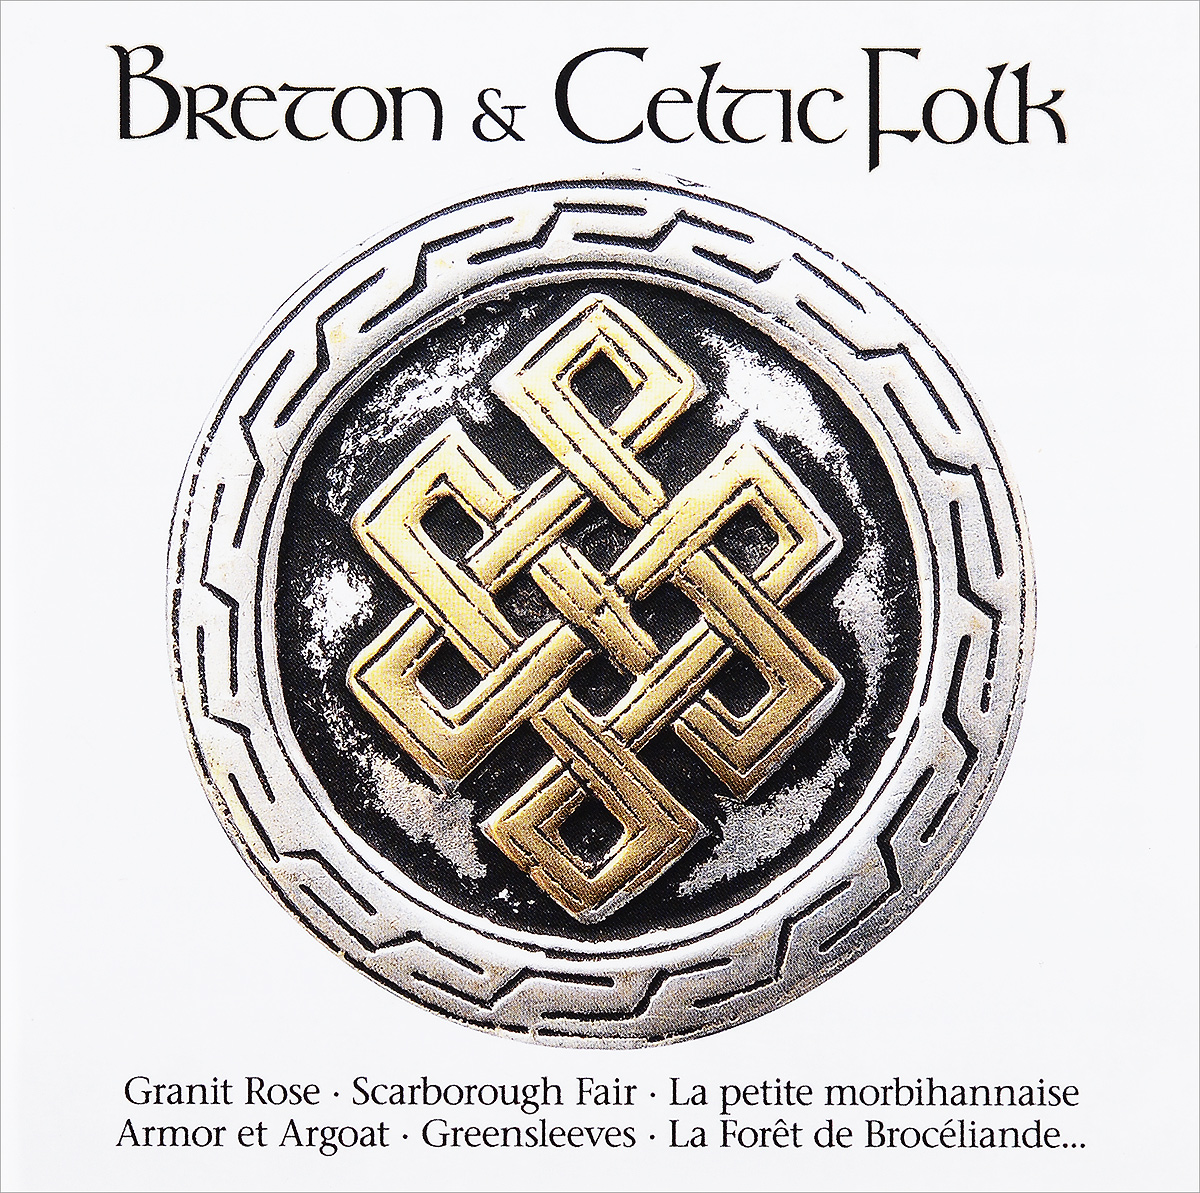 The Kings River Band,Les Bardes De Baud,The O'Brians,Irish Orchestra,Azzurra Orchestra,Zirp,Folk Orchestra Breton & Celtic Folk (2 CD) sticker kings